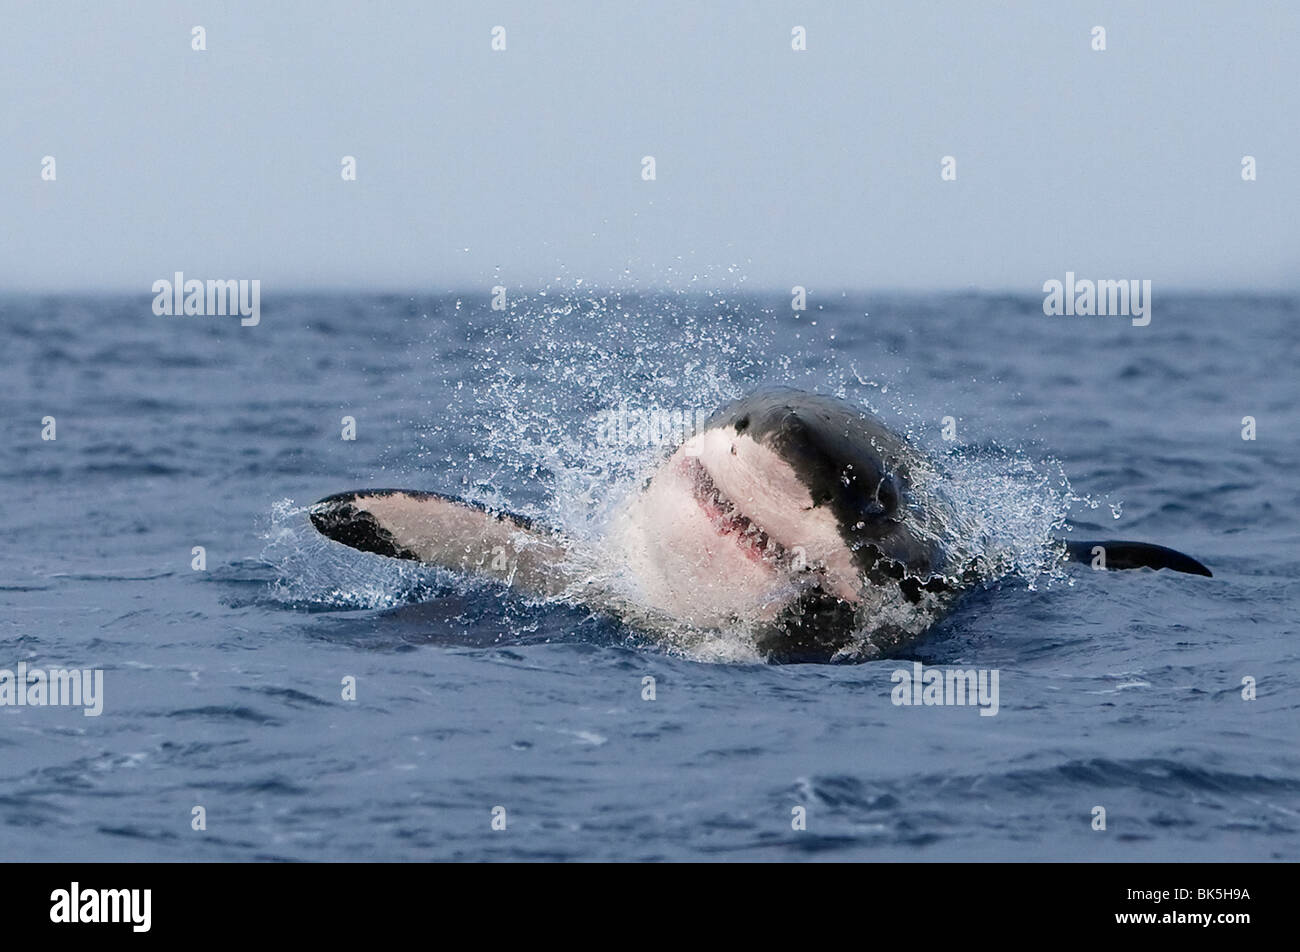 Great white shark (Carcharodon carcharias), breaching, Seal Island, False Bay, Cape Town, South Africa, Africa - Stock Image